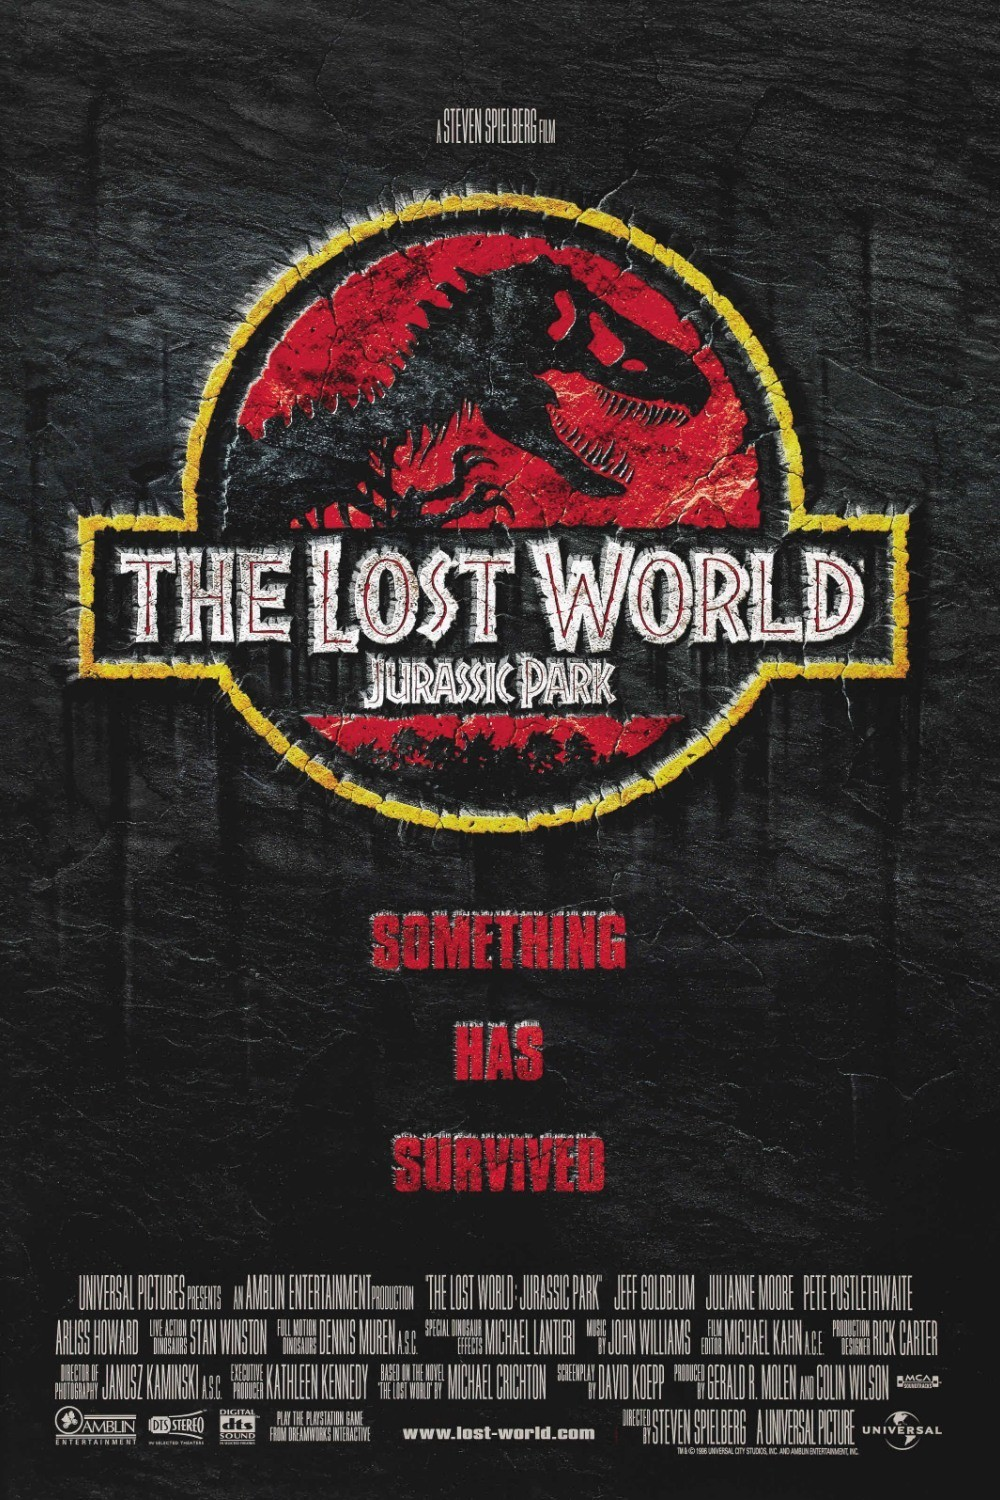 lost_world_jurassic_park_ver2_xlg.jpg